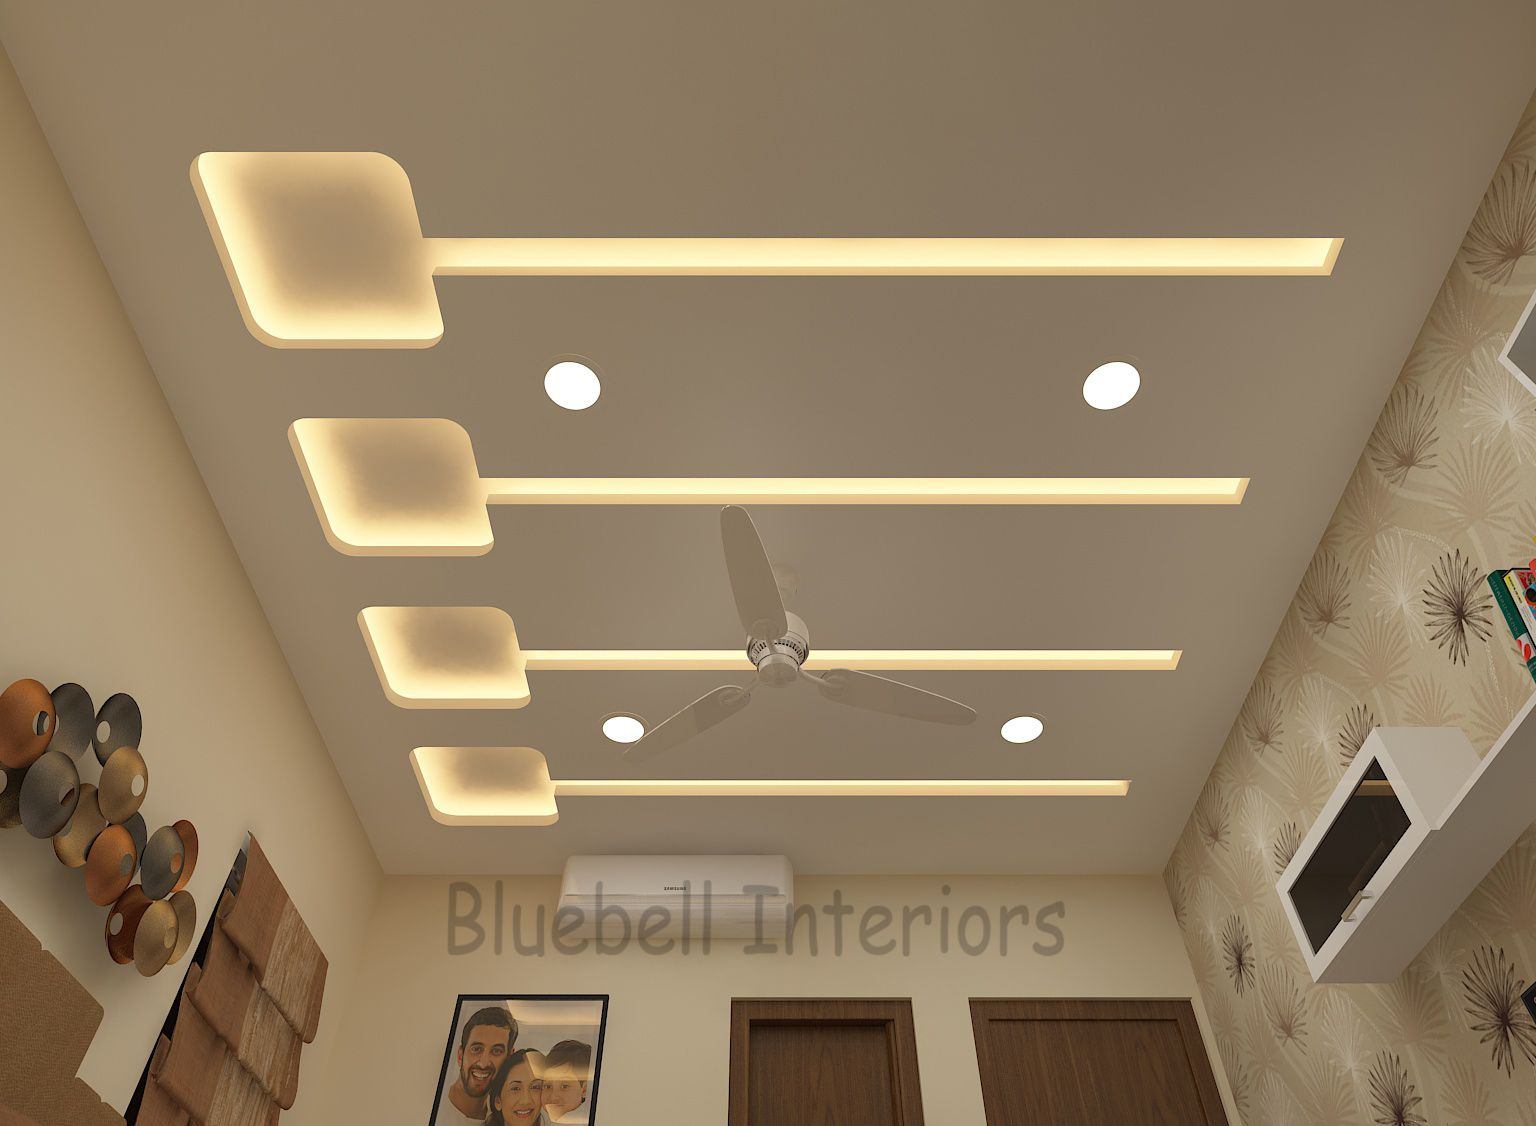 Bedroom False Ceiling Gypsum Ceiling Lighting Design Bed